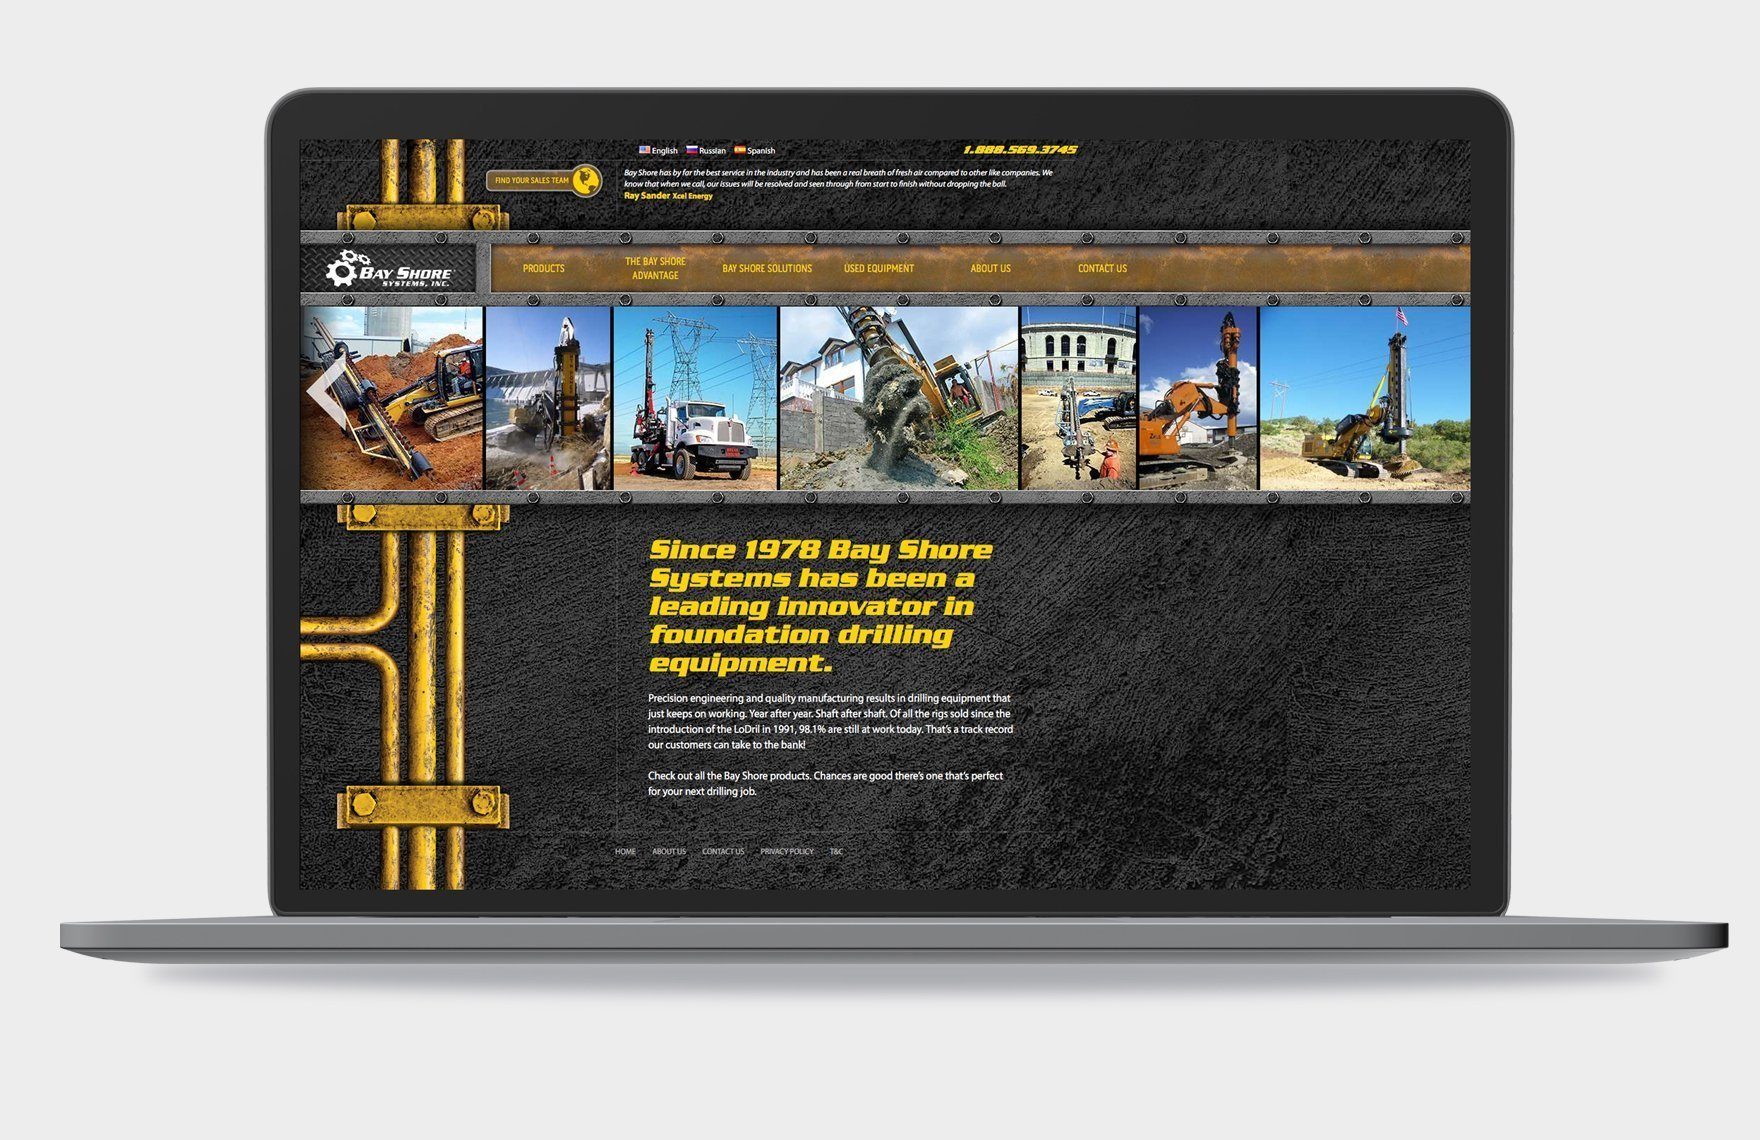 Bay Shore Systems, Inc. website prior to the redesign.